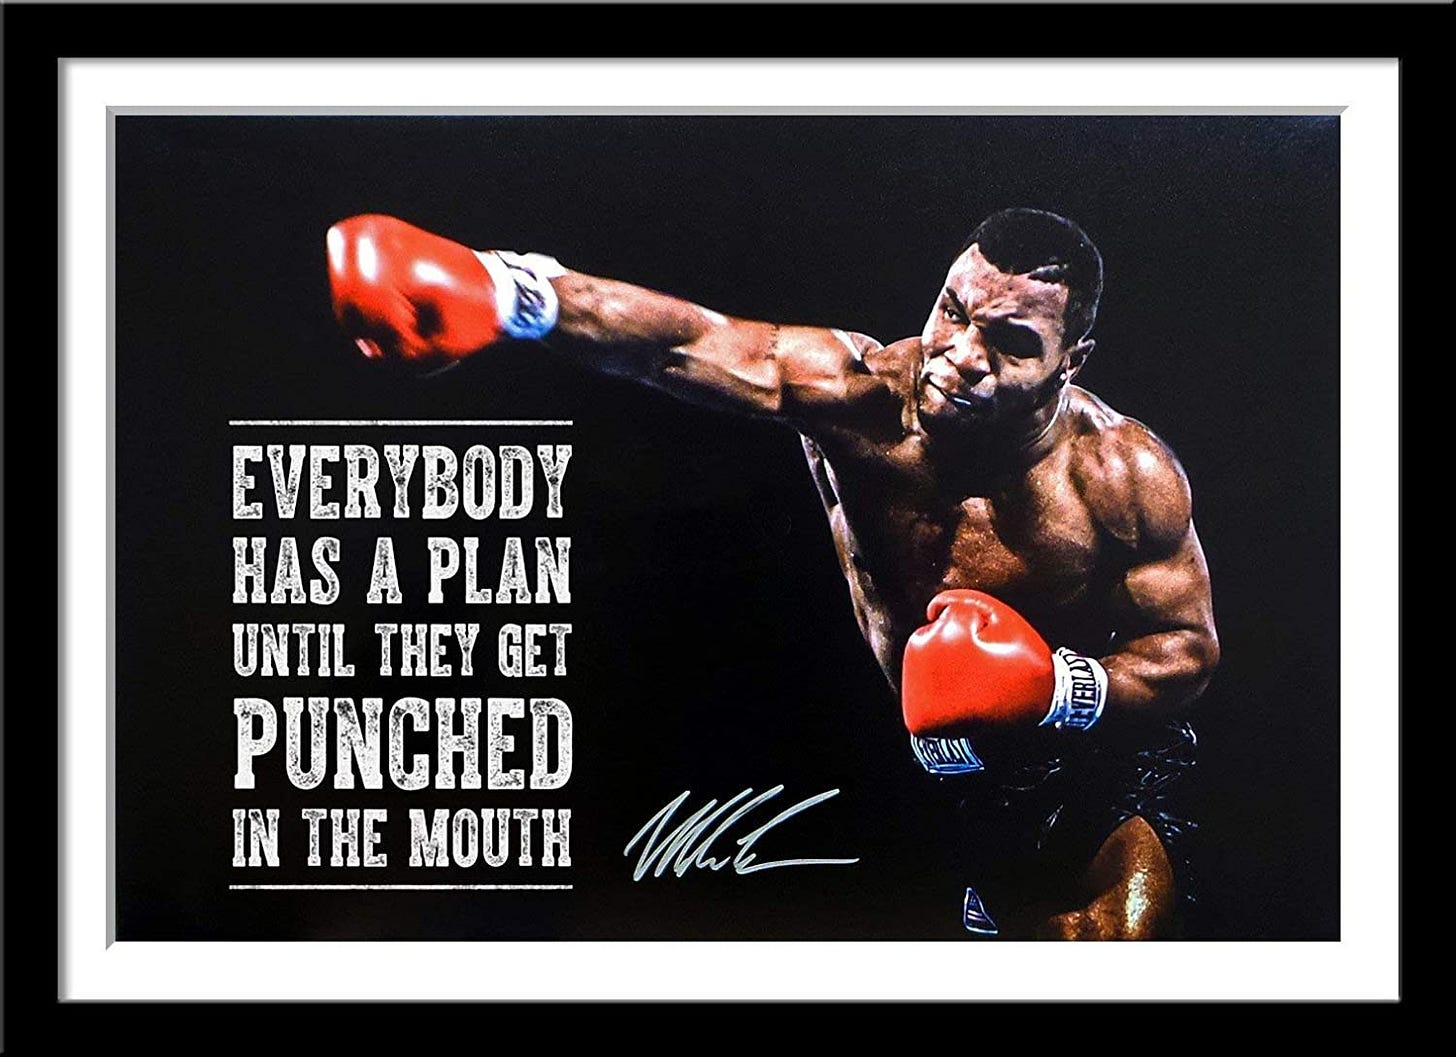 Tallenge - Mike Tyson - Everybody Has A Plan Till They Get Punched in The  Mouth - Large Poster Paper - Framed (24 x 34 inches) - Multi Colour:  Amazon.in: Home & Kitchen